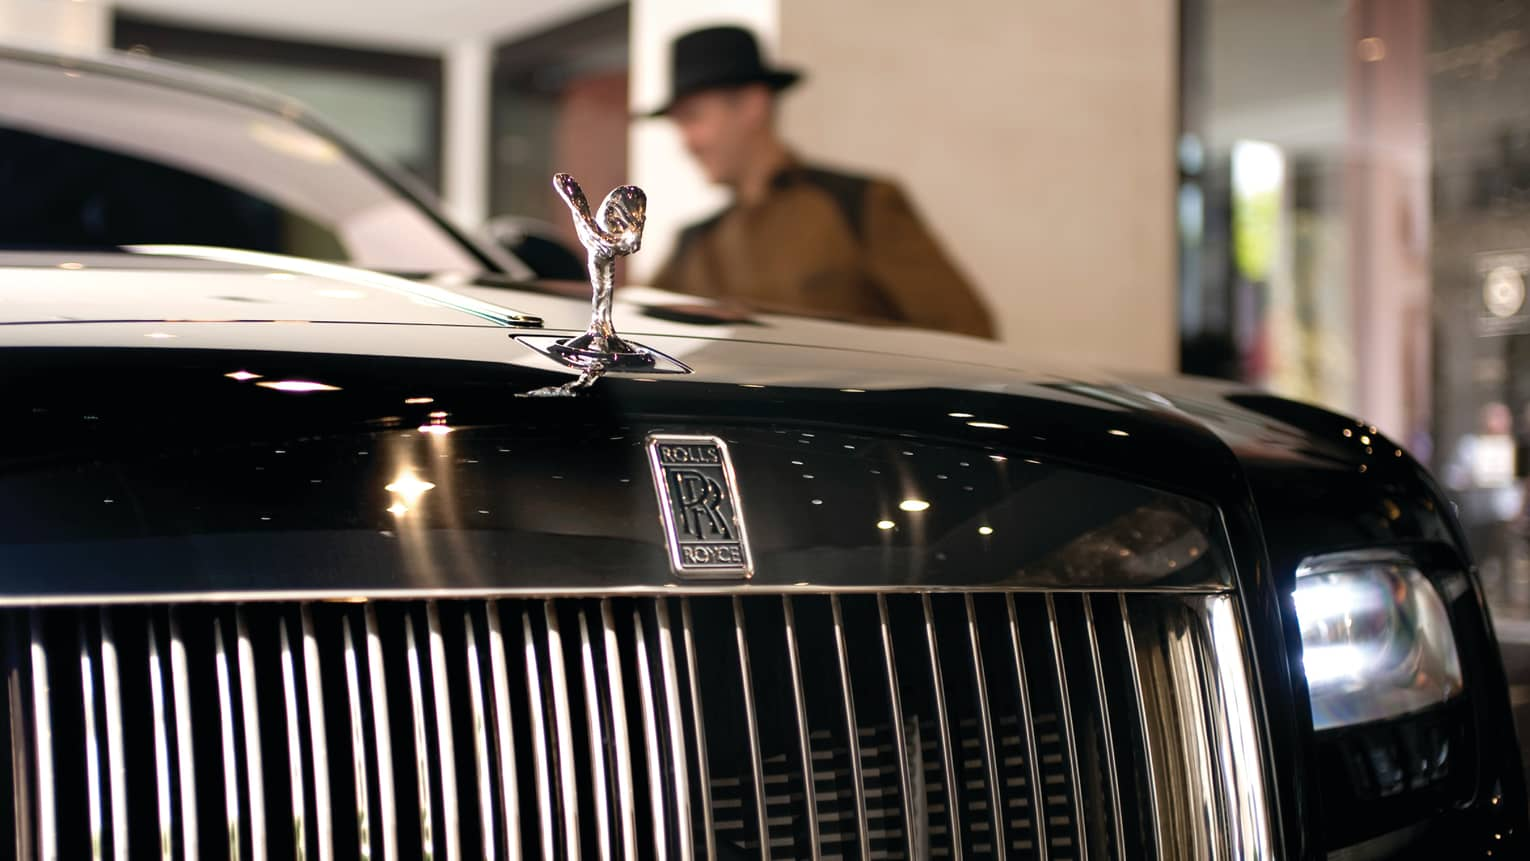 Close-up of Rolls Royce luxury car front grill, man in top hat in background